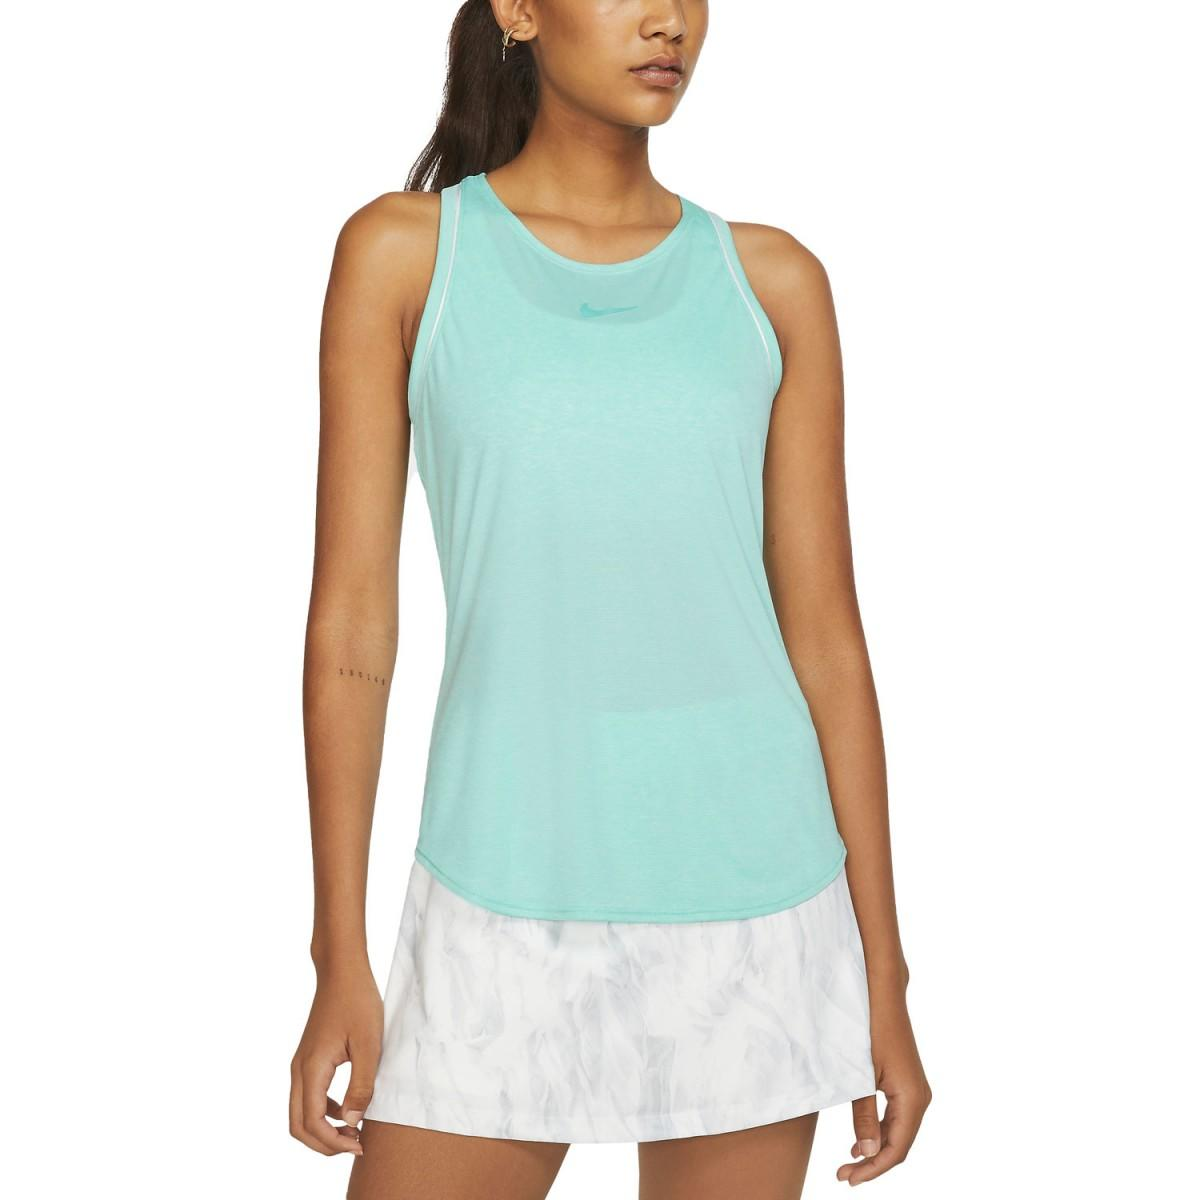 Теннисная майка женская Nike Court Dry Tank light aqua/white/white/light aqua